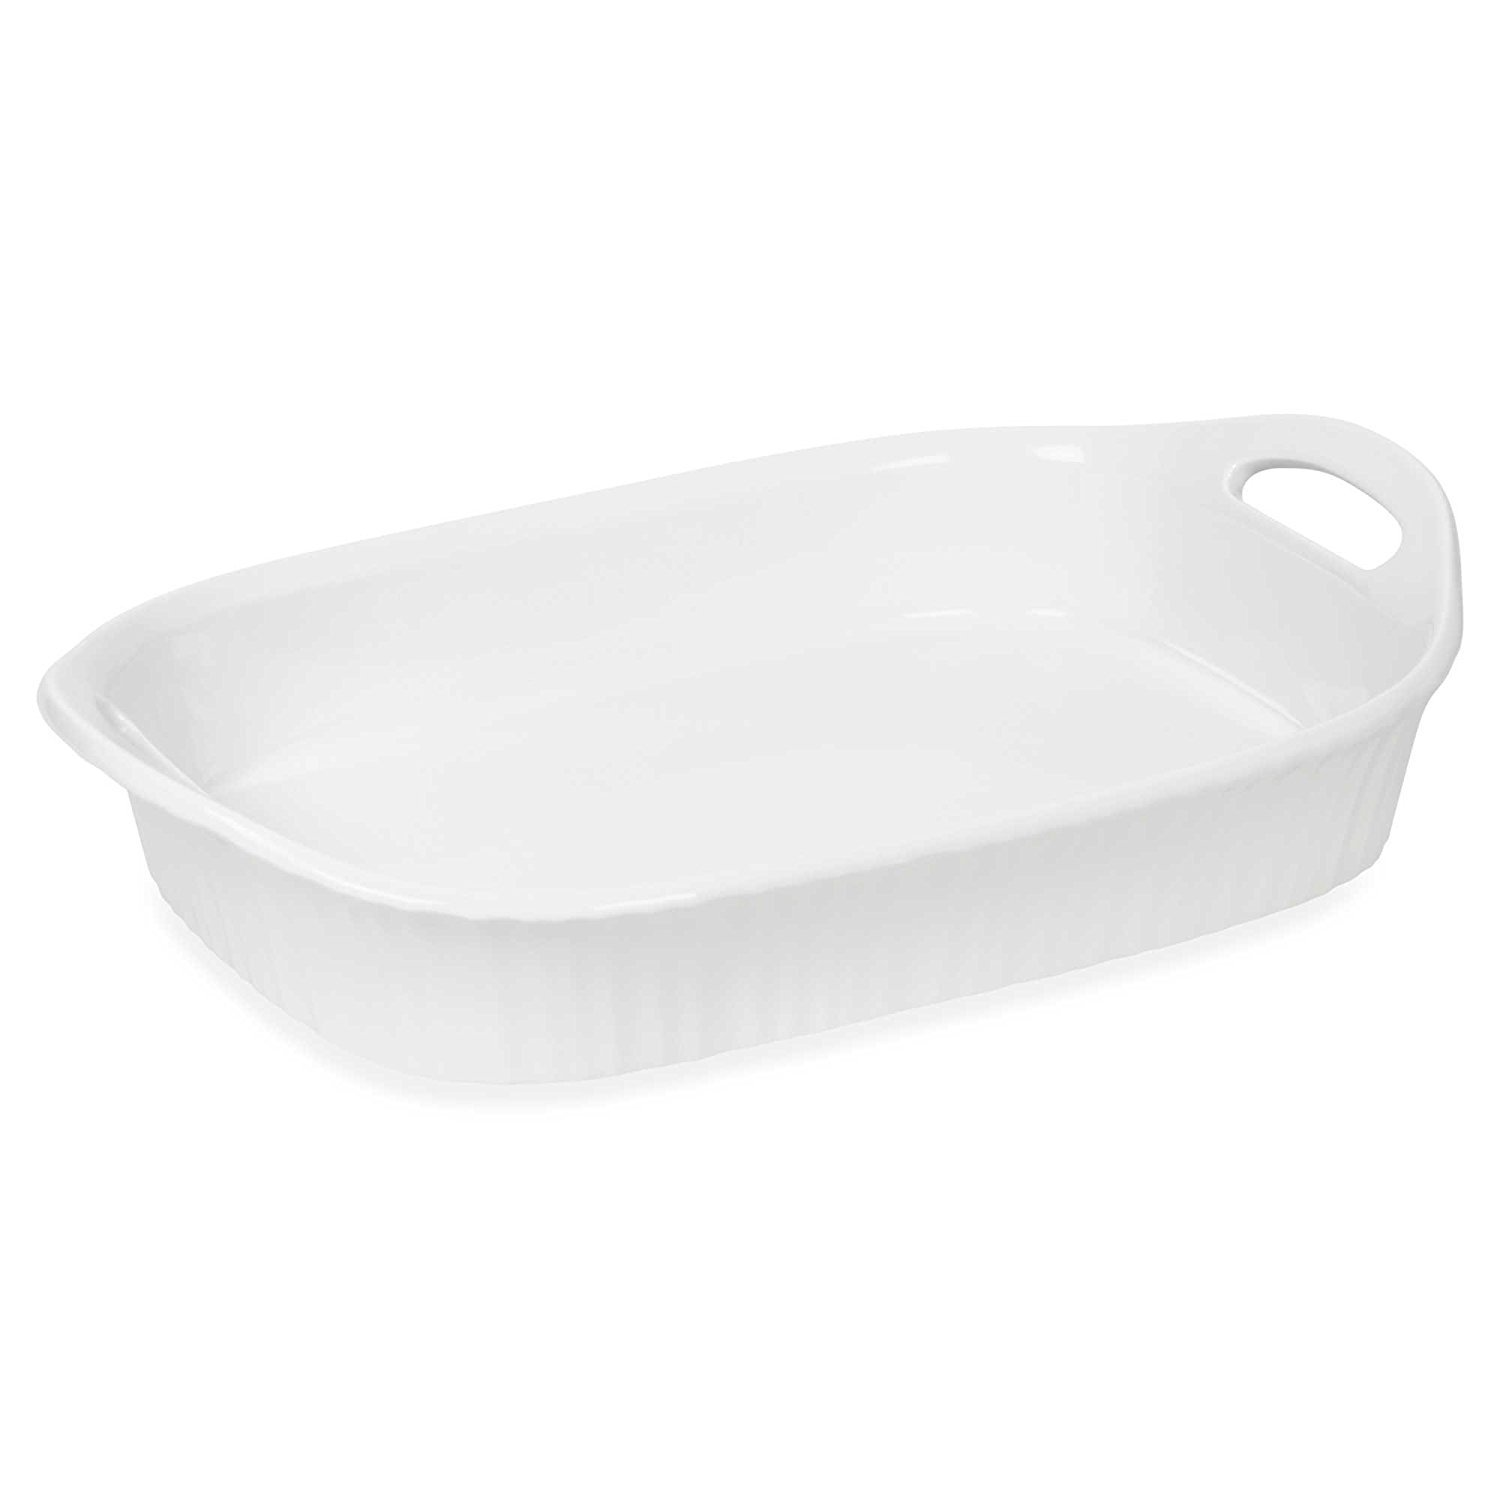 CorningWare French White III 3-Quart Ceramic Oblong Casserole Dish with Sleeve | Oven, Microwave, Refrigerator and Freezer Safe